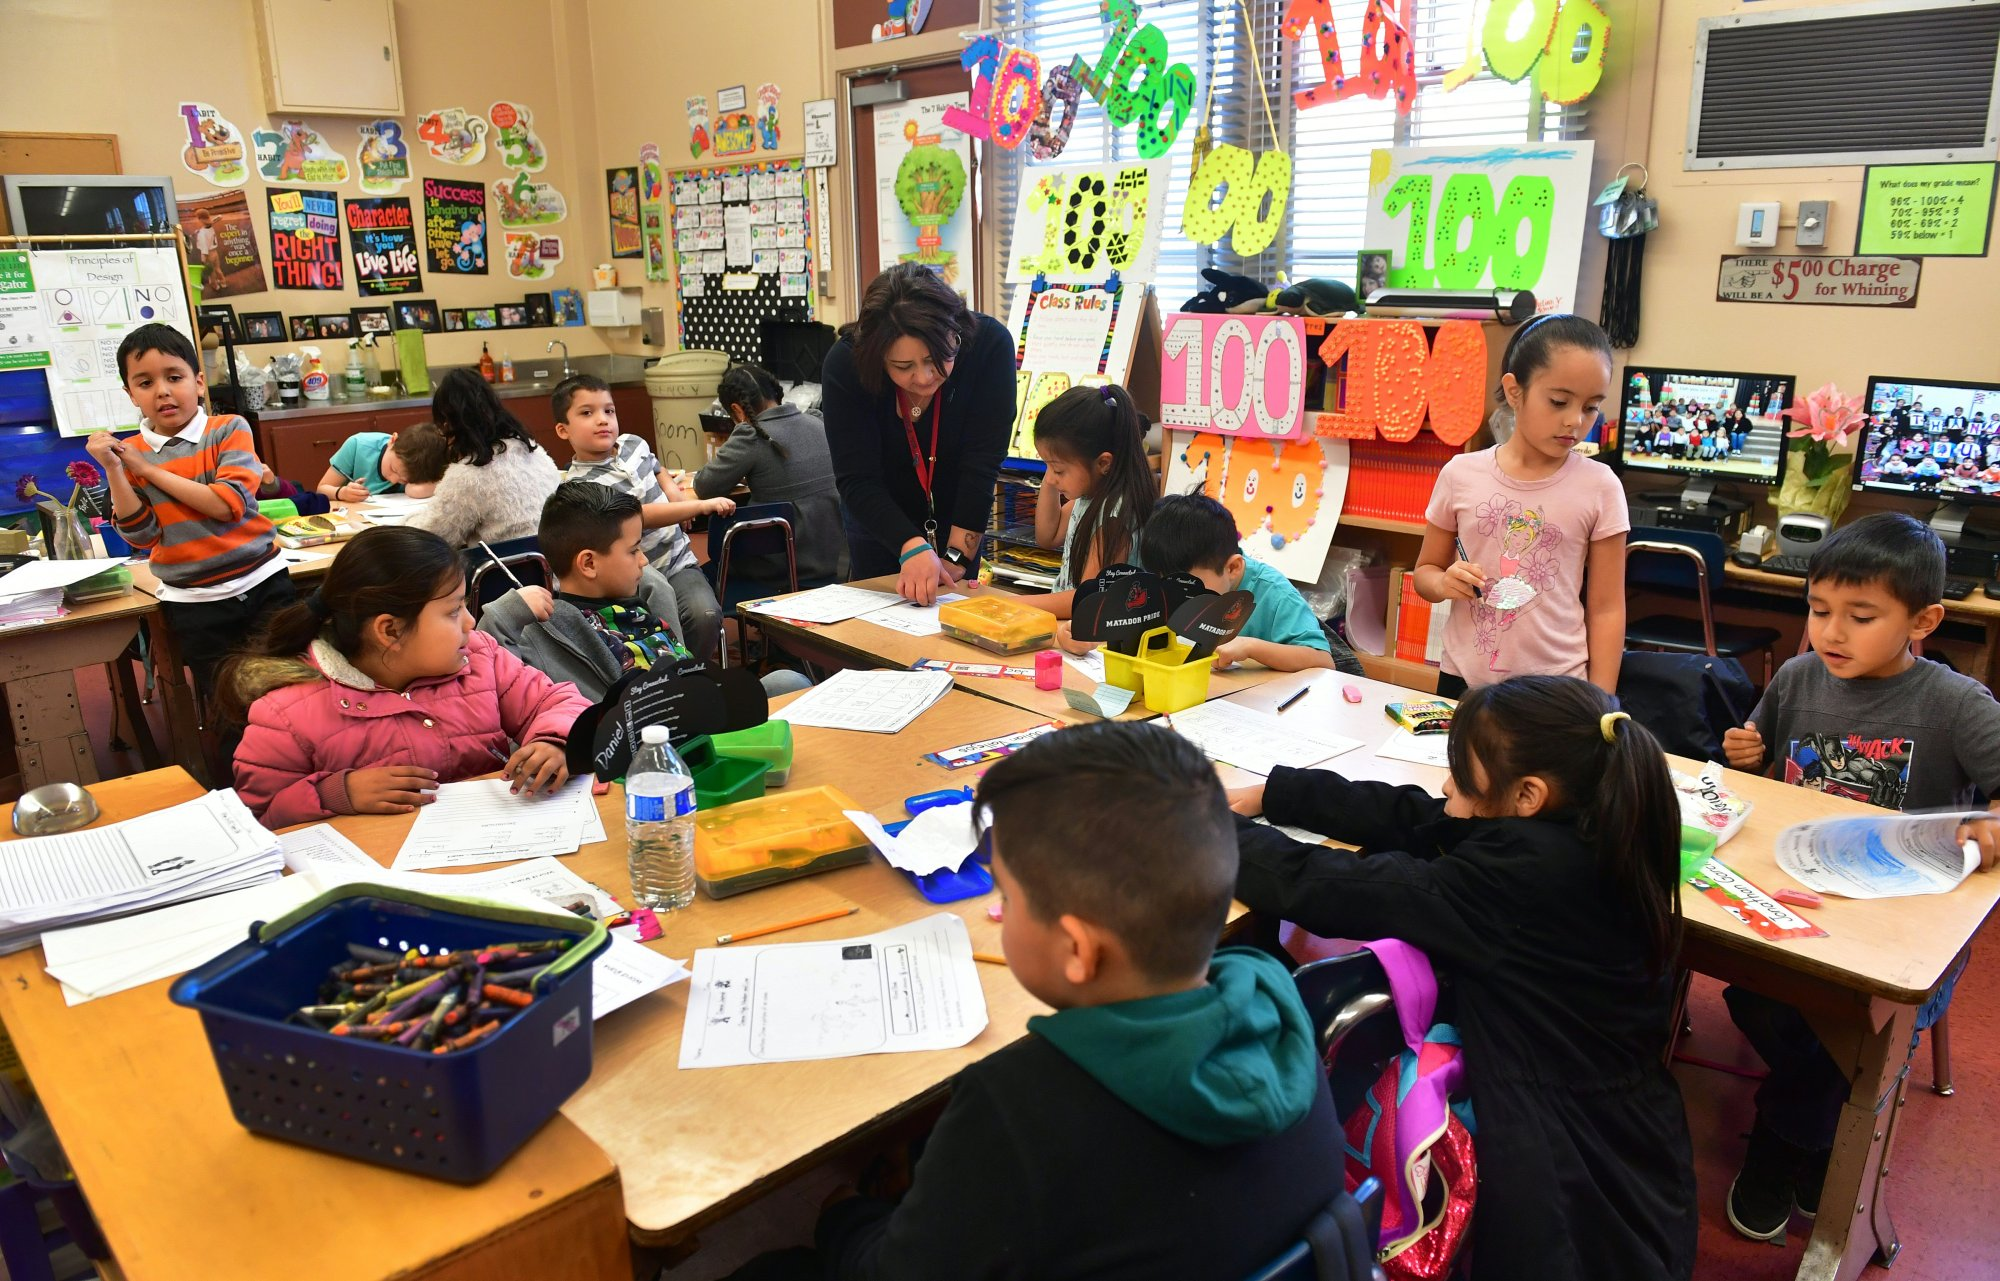 Telfair Elementary School first grade teacher Ms. Gutierrez works with her students on Feb. 8, 2019, in Pacoima. (Credit: FREDERIC J. BROWN/AFP/Getty Images)